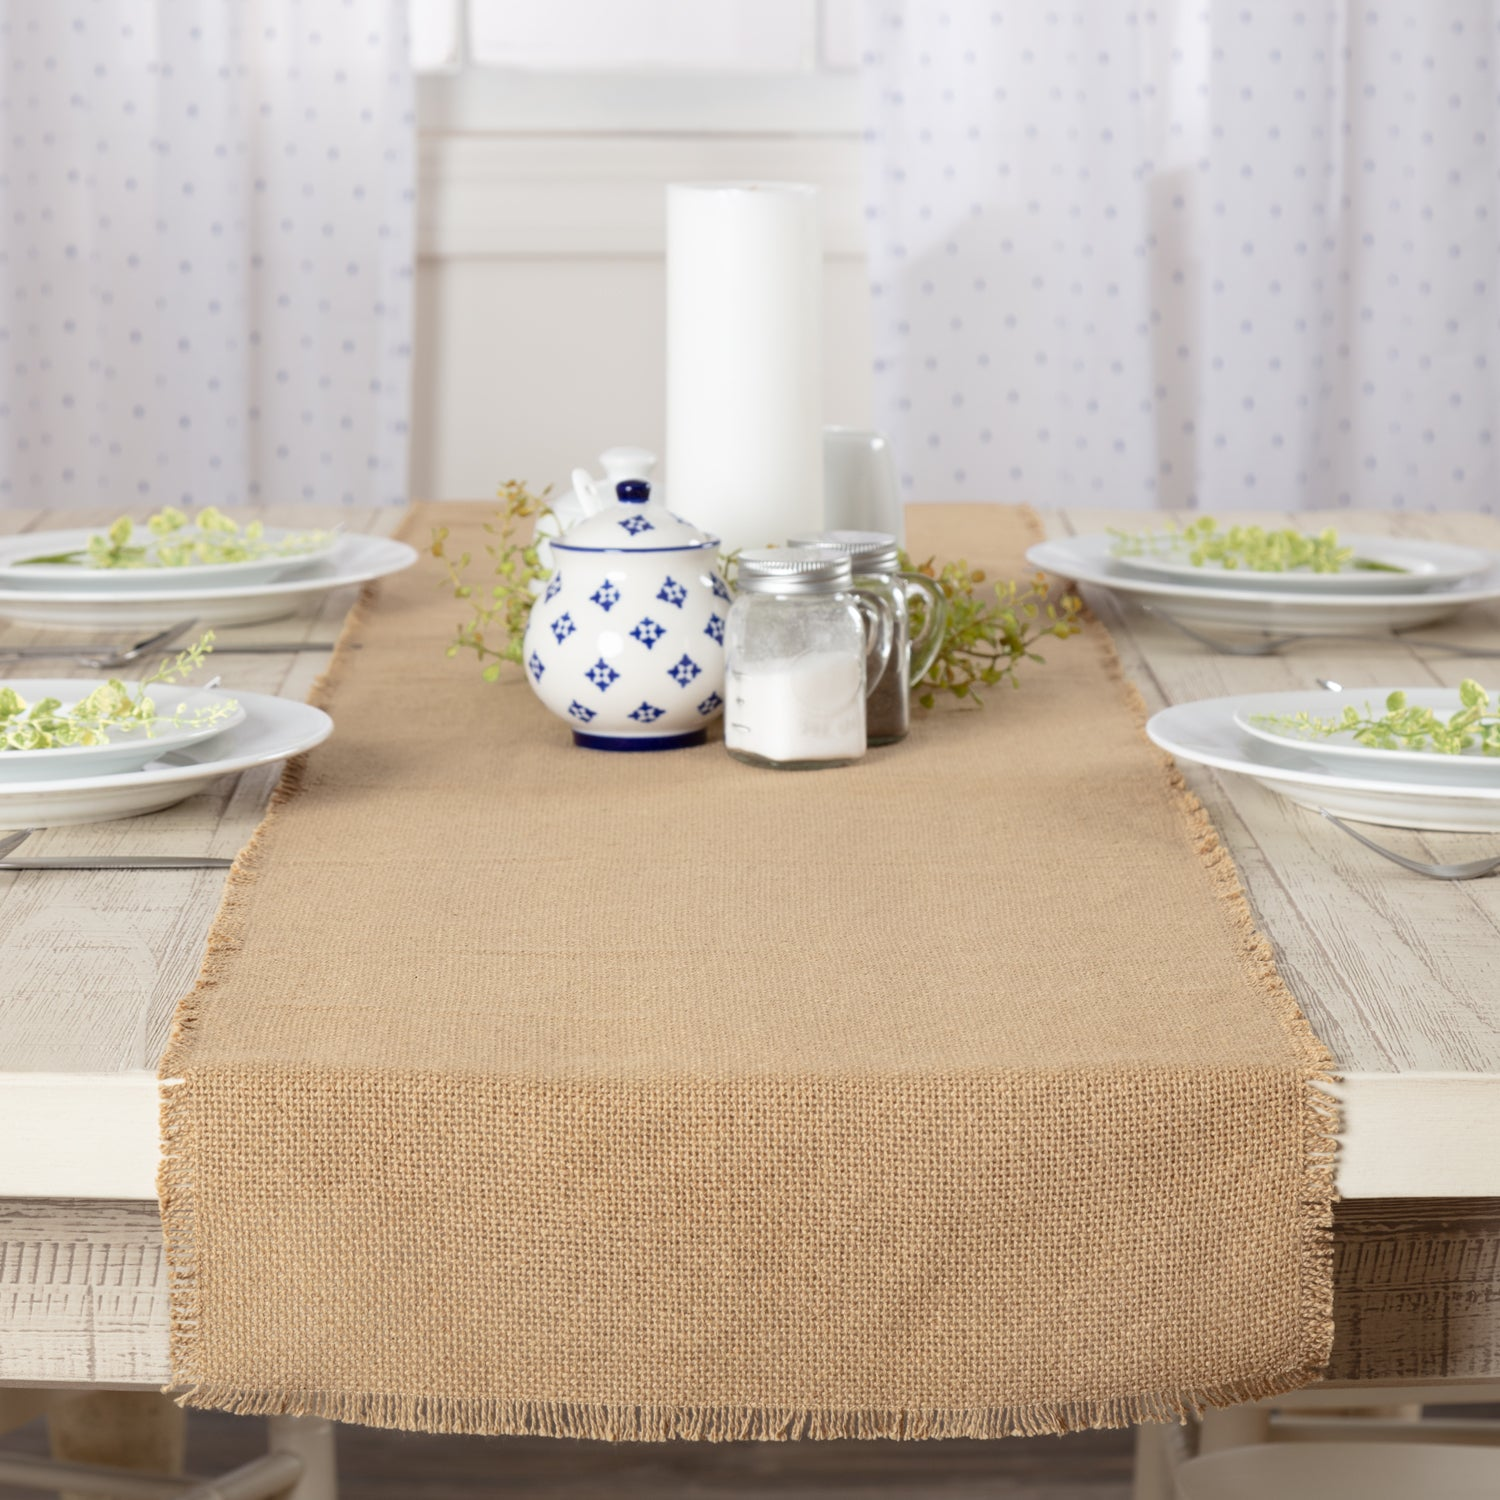 Burlap Natural Runner Fringed 13x72 - Woodrol